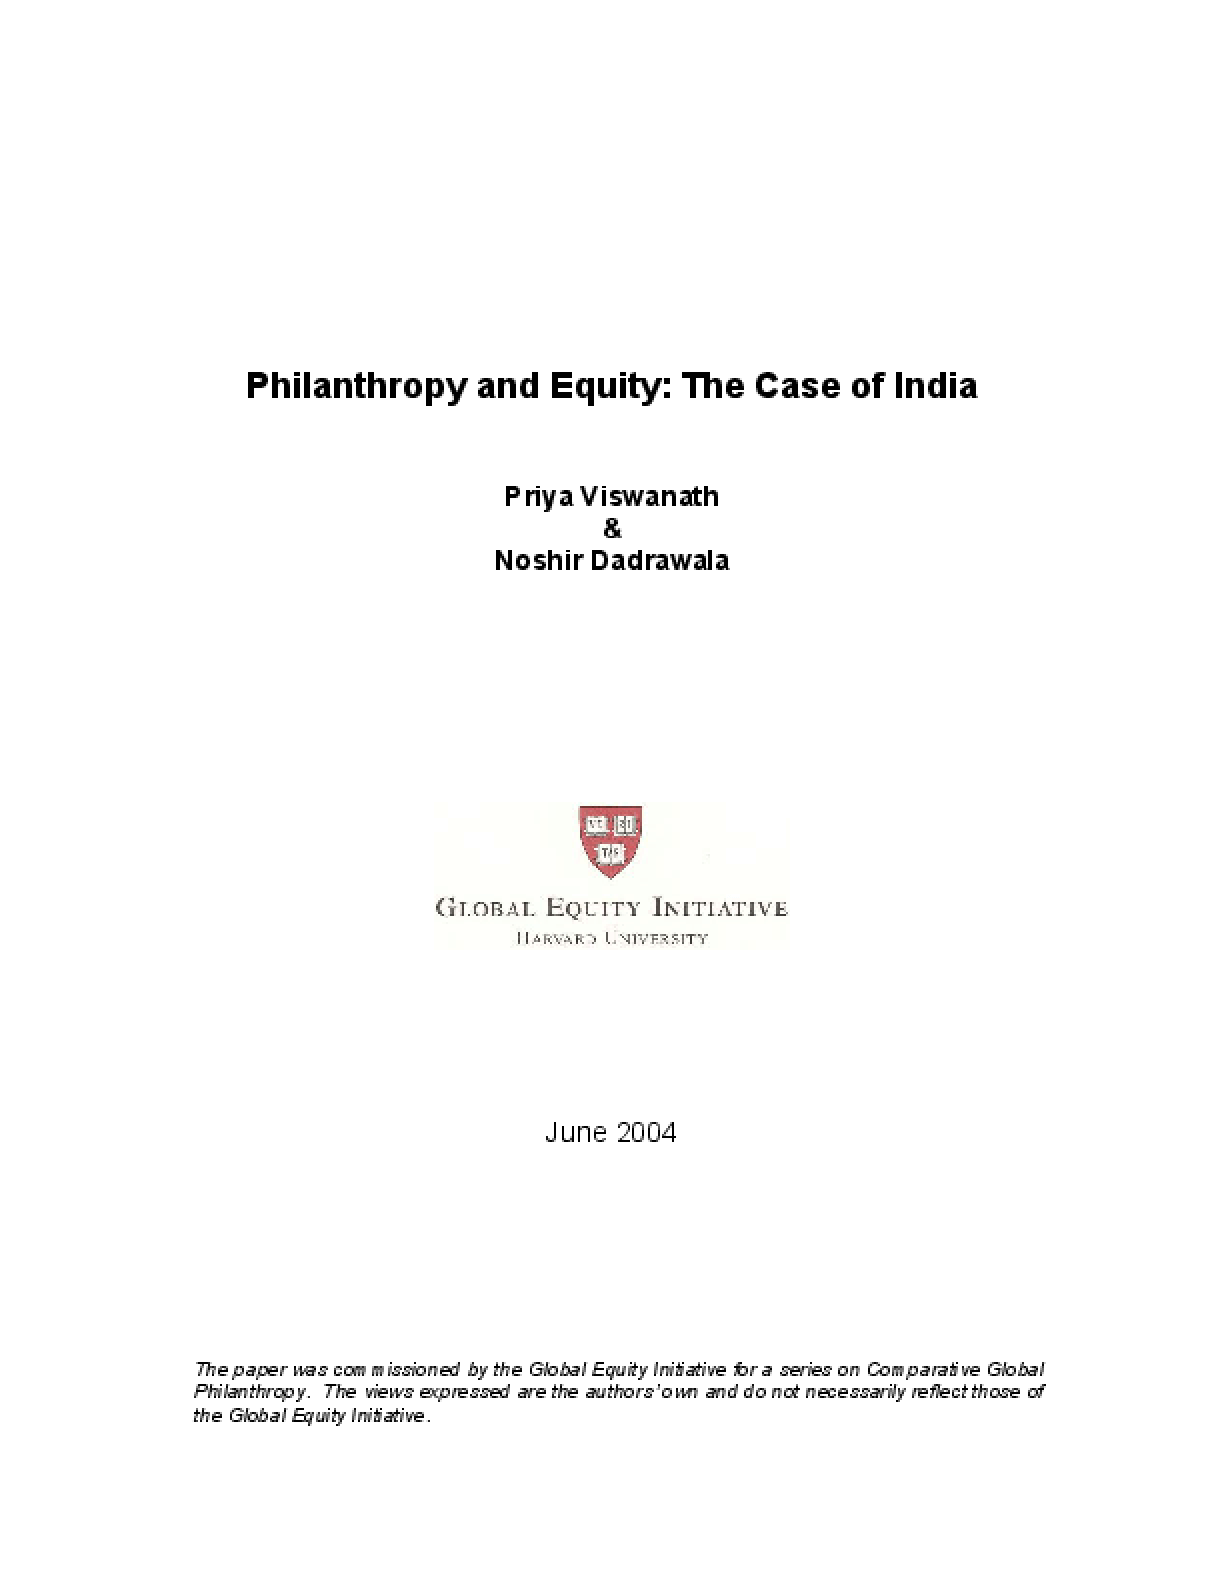 Philanthropy and Equity: The Case of India